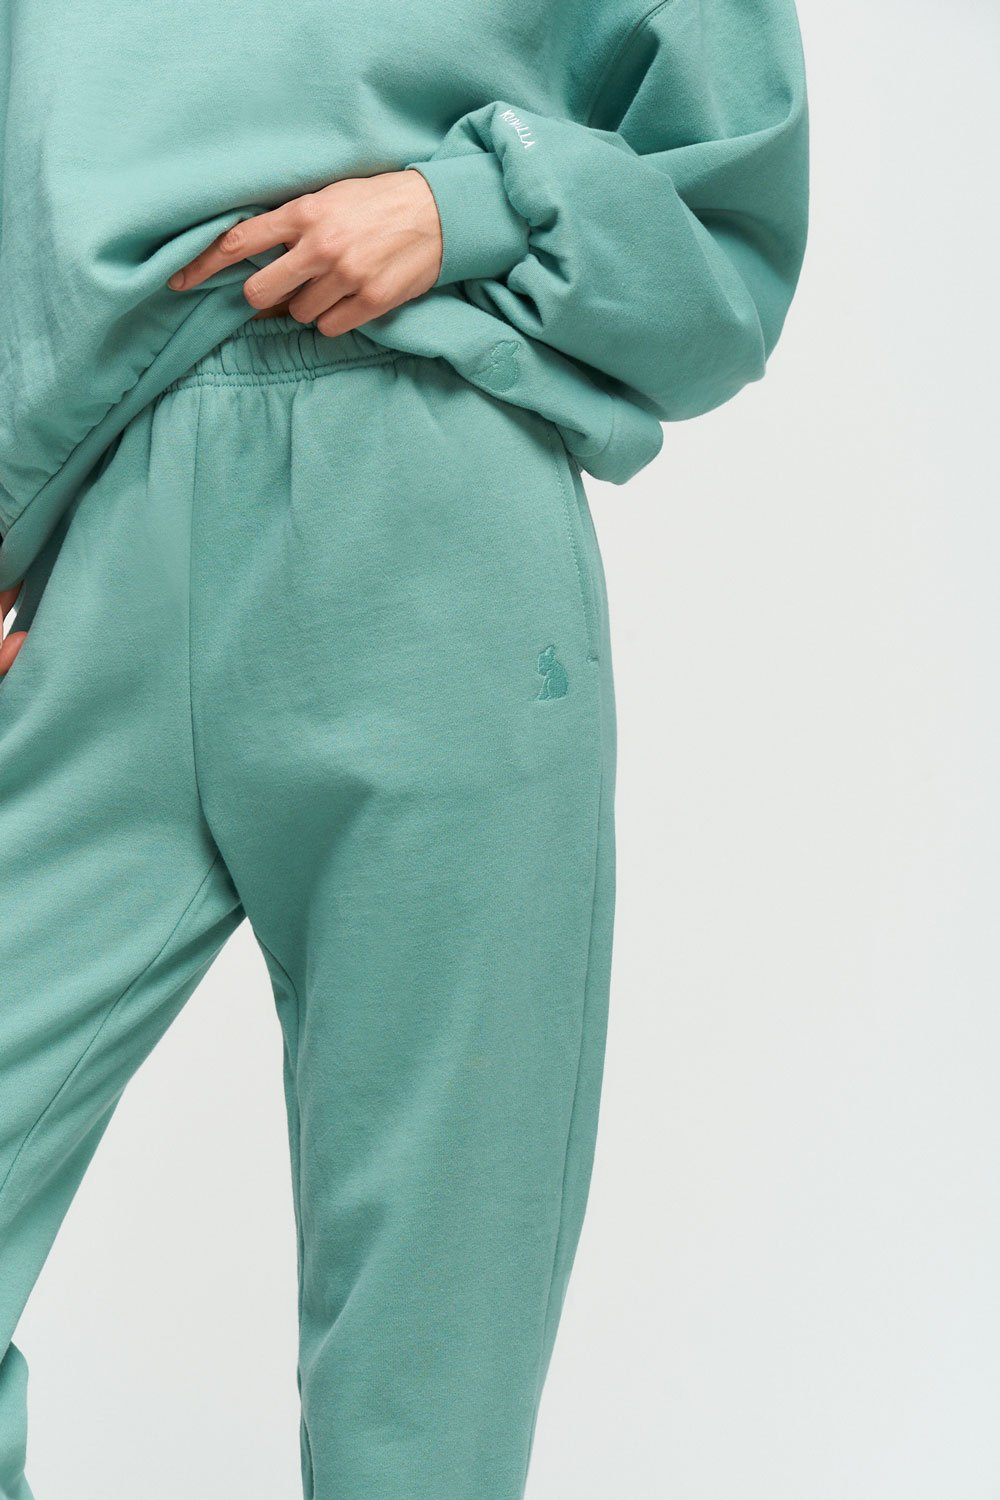 Oversized Sweatpants | Green Tea